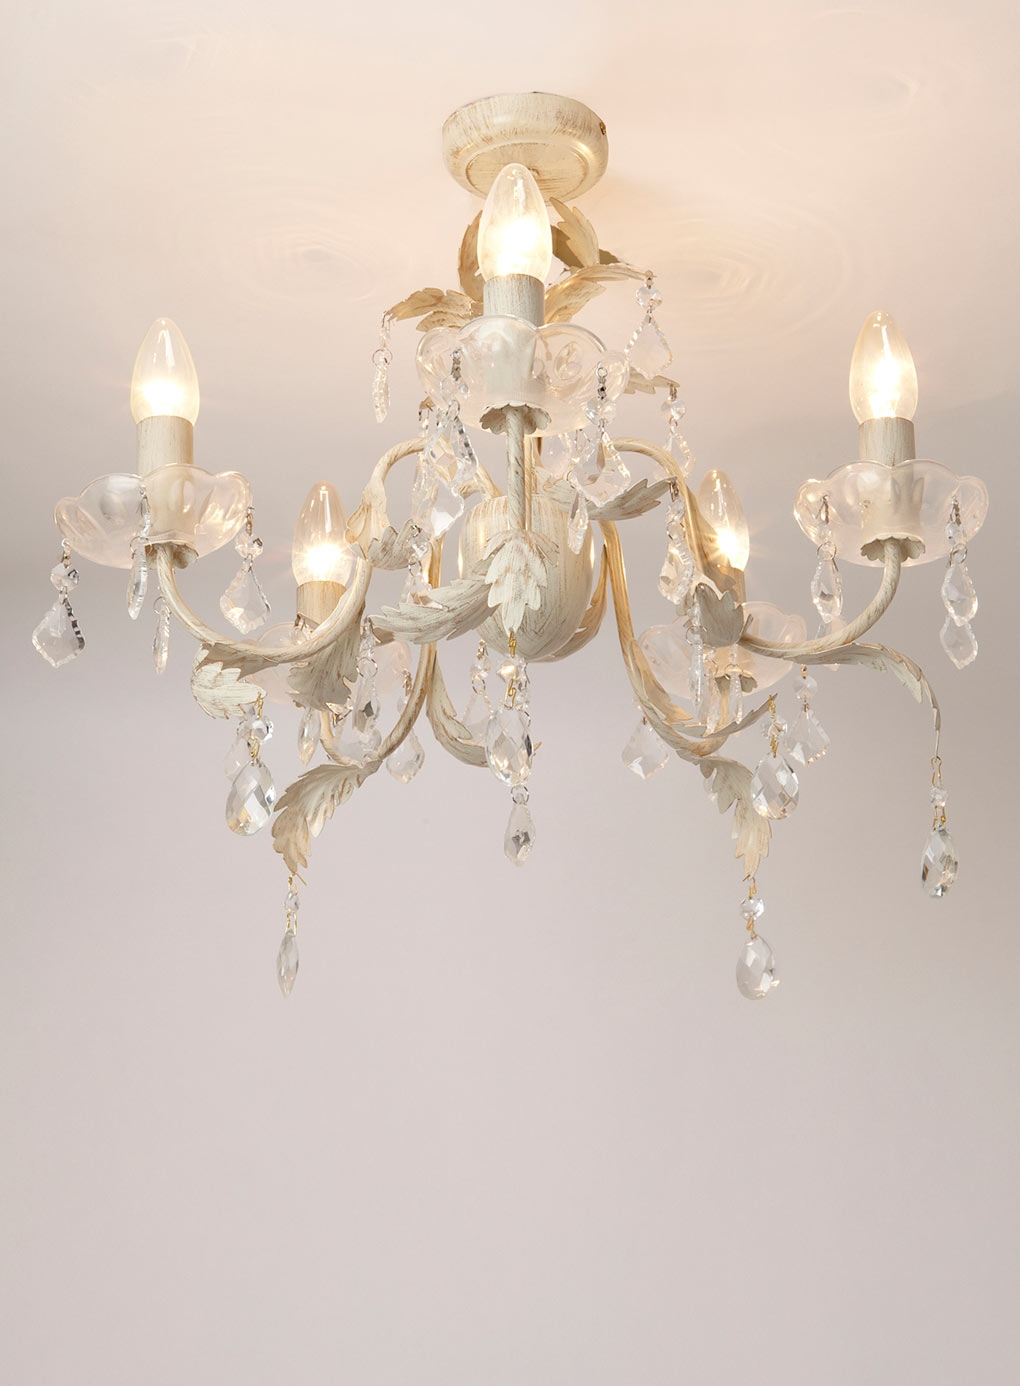 Popular Photo of Flush Fitting Chandeliers